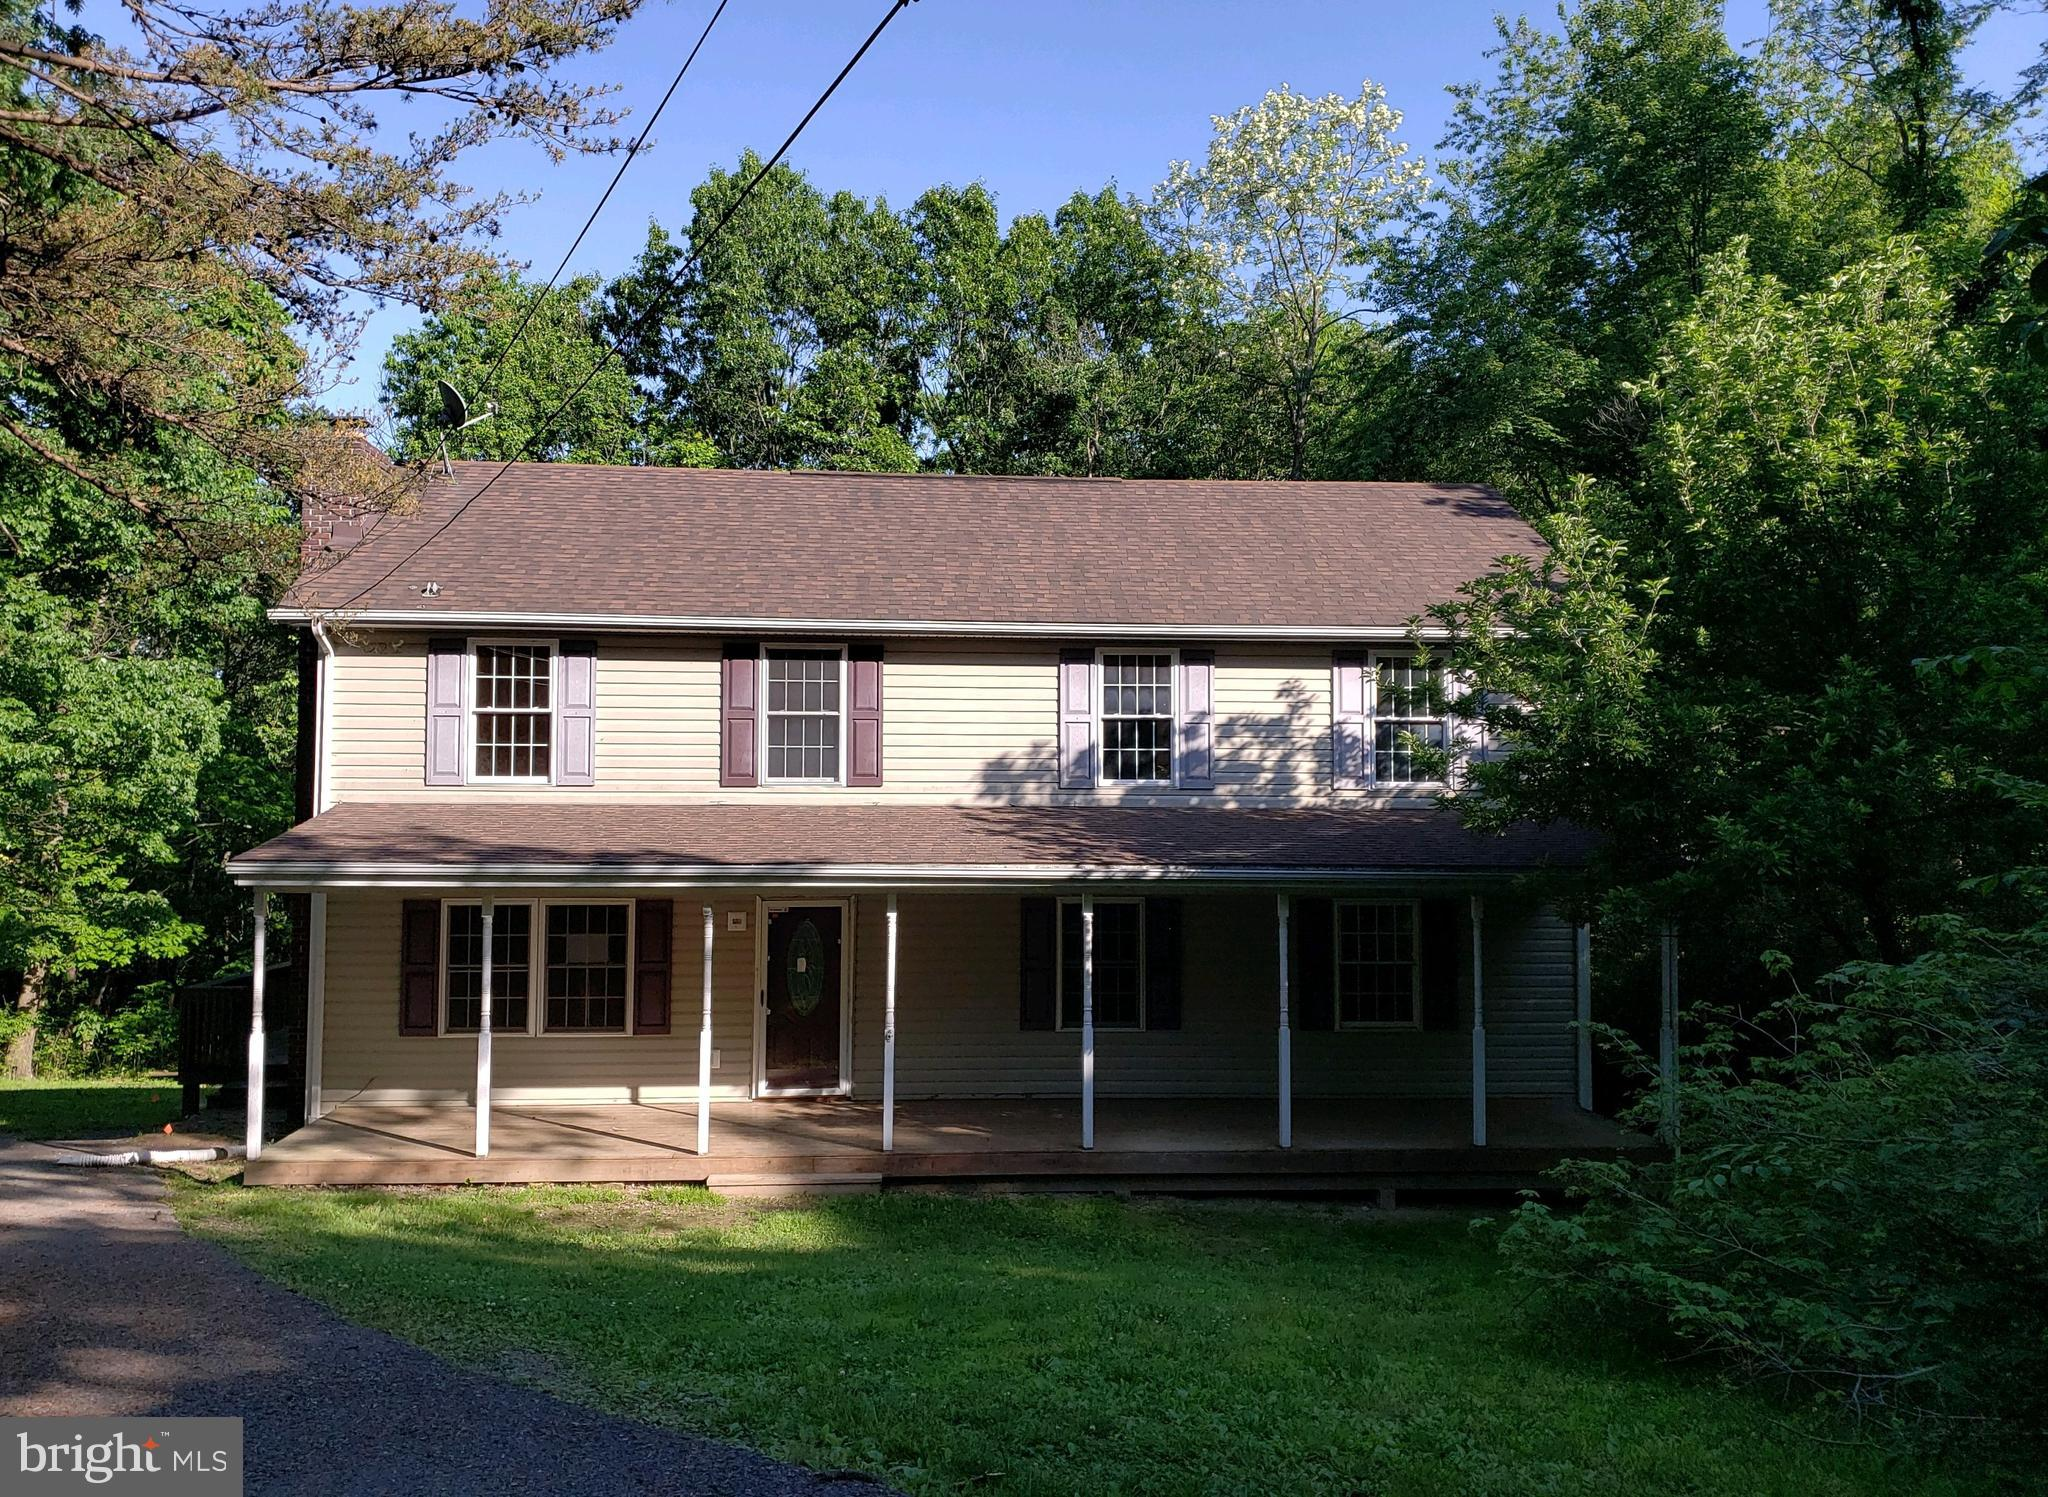 Colonial style home sits on approx. 1.5ac wooded lot in Apple Orchard Acres. Home features 4 BRs, 3 FBs, covered front porch and partially finished basement with fireplace.